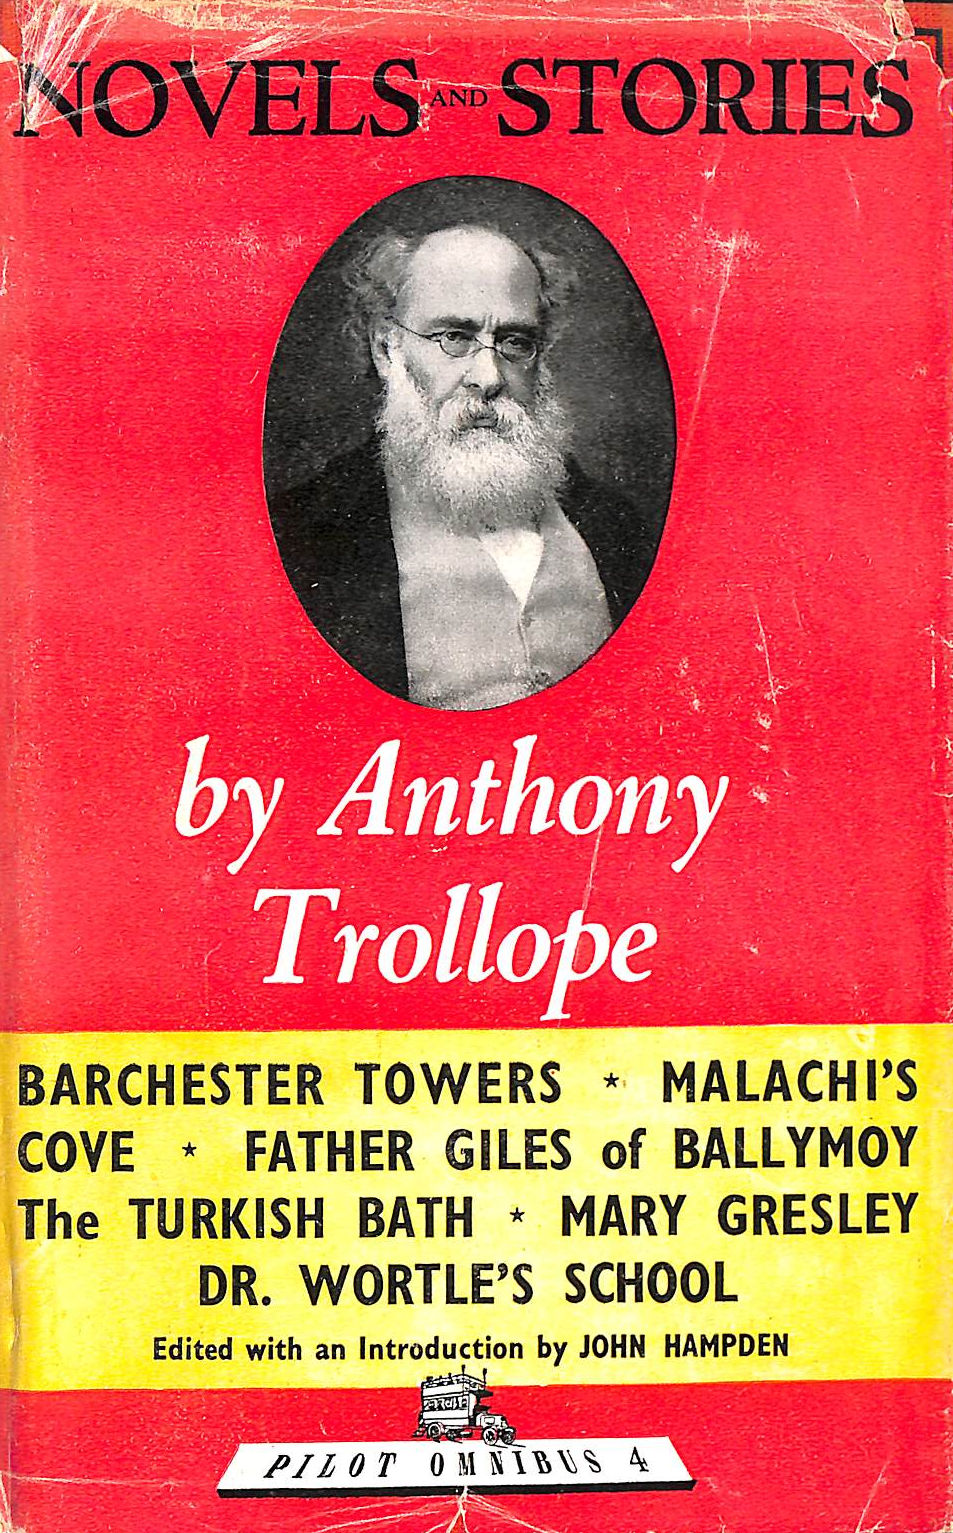 Image for Novels And Stories By Anthony Trollope Barchester Towers Malachi's Cove The Turkish Bath Mary Gresley Father Giles Of Ballymoy Dr Wortle's School